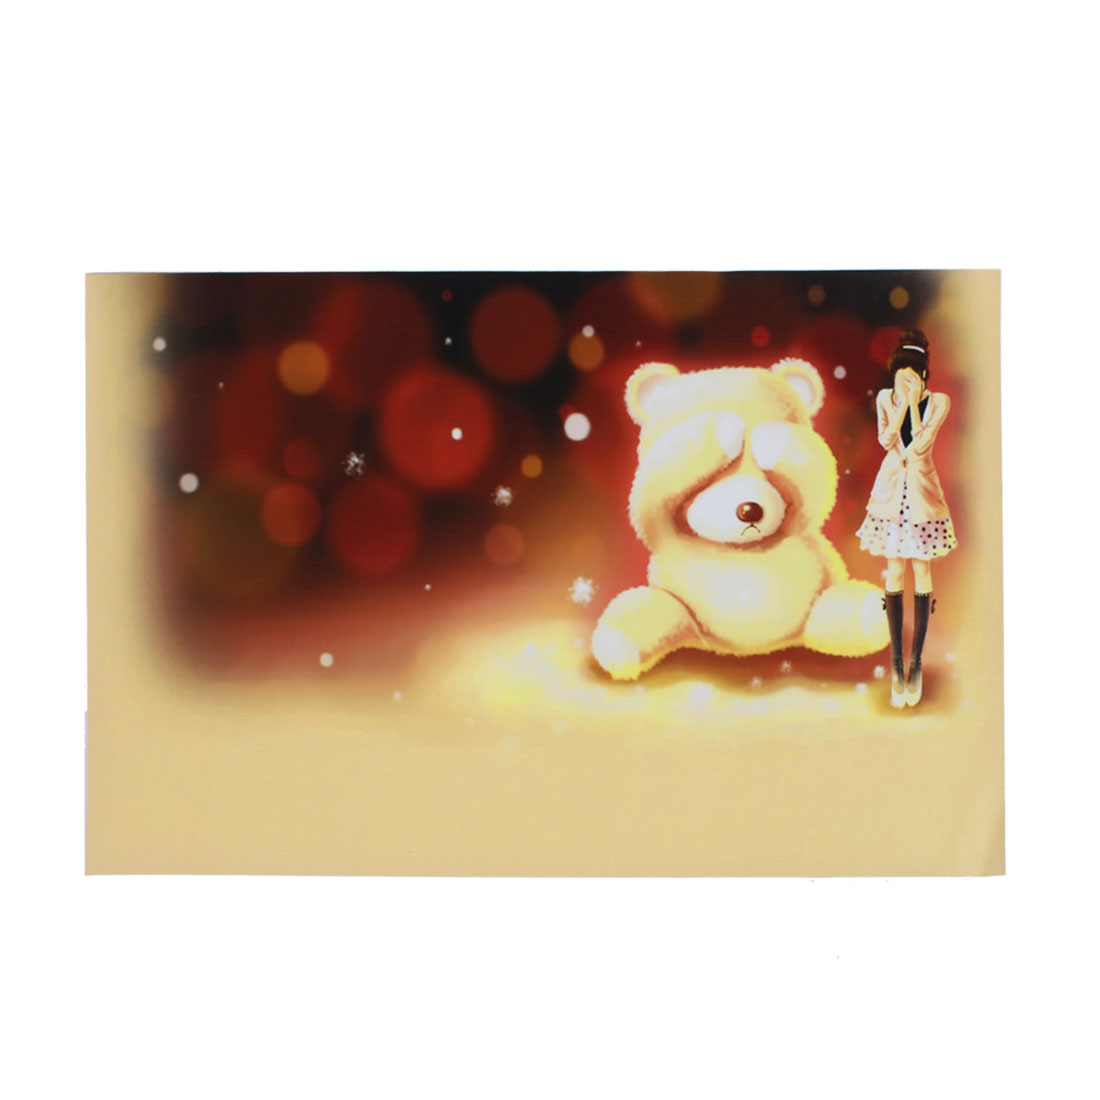 "Anime Girl Cartoon Bear Beige Burgundy Decorative Sticker Decal for 14"" Laptop"